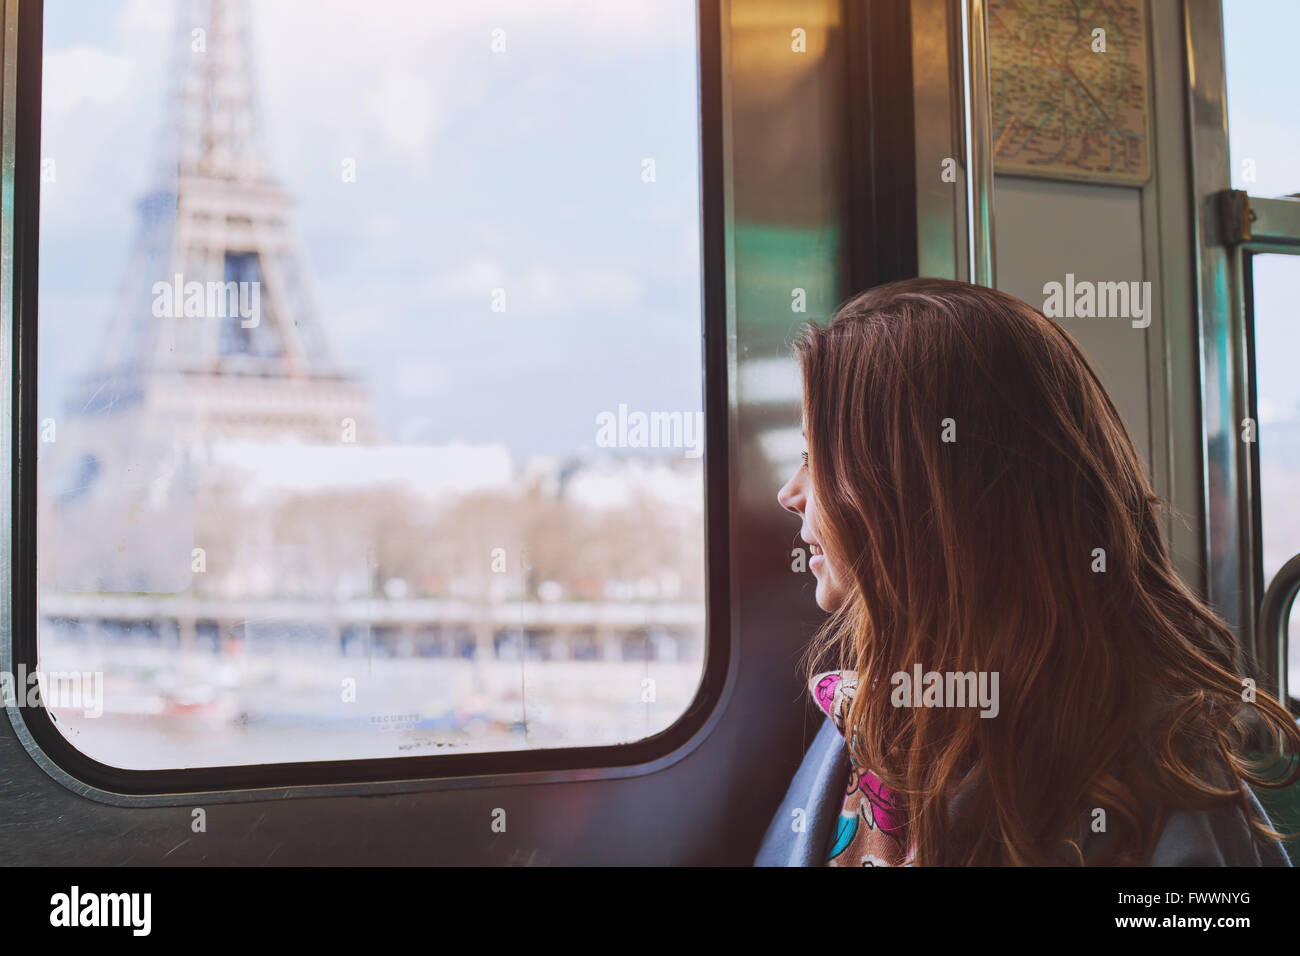 tourist looking to the Eiffel Tower through the window of metro in Paris, smiling girl visiting France Stock Photo